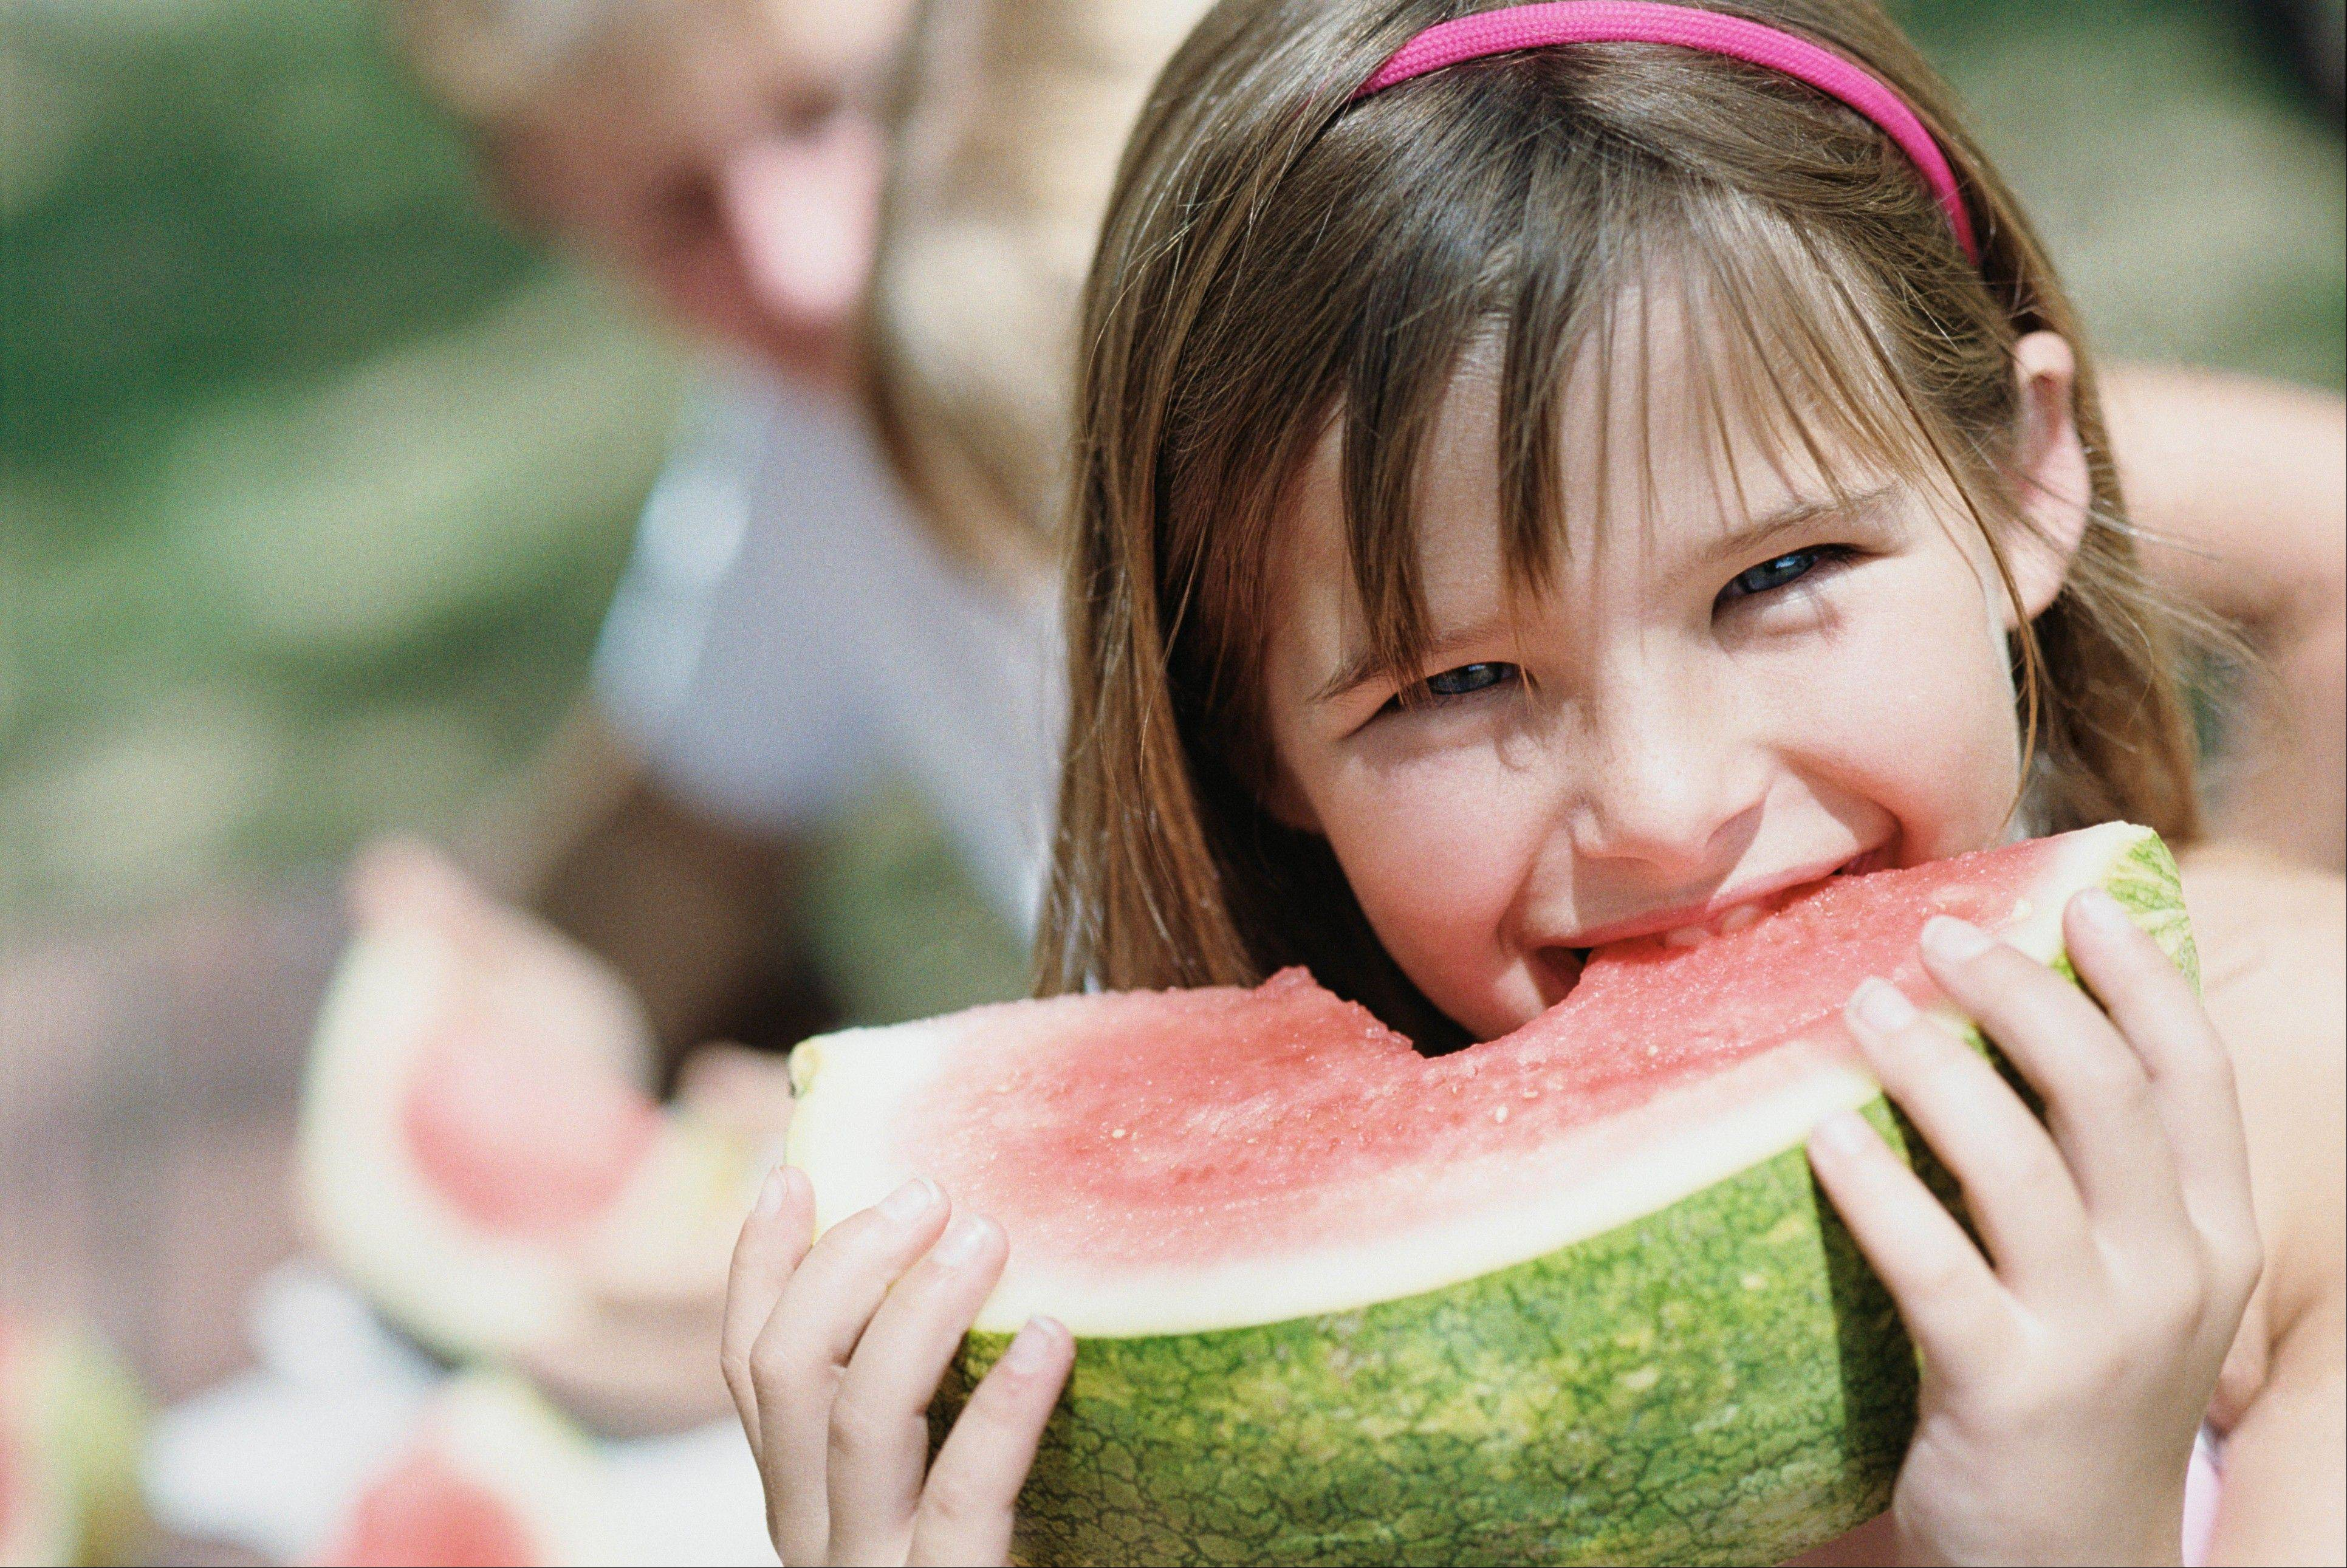 Provide fruits with high water content like watermelon for your kids to eat during the summer.